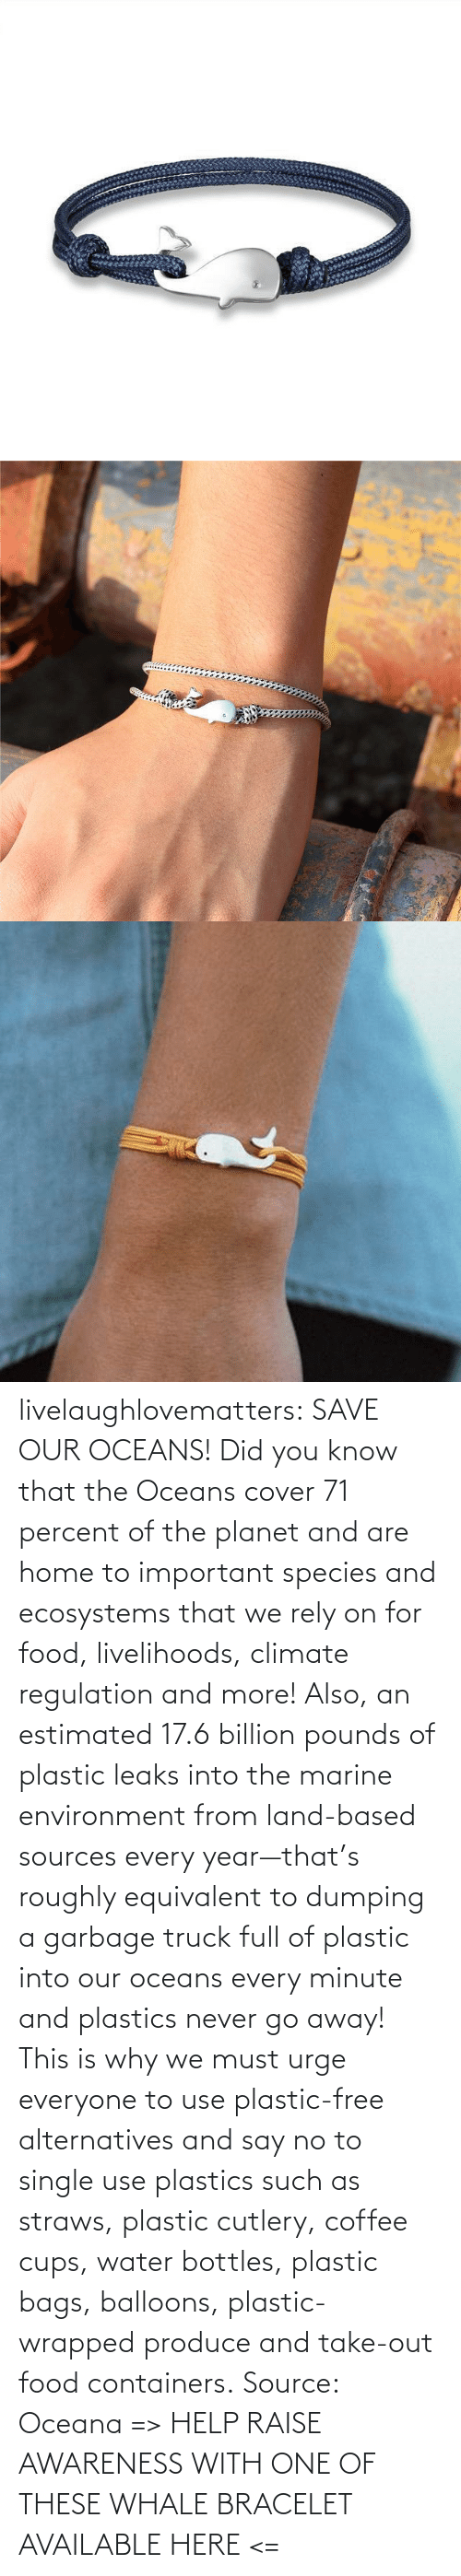 out: livelaughlovematters: SAVE OUR OCEANS!  Did you know that the Oceans cover 71 percent of the planet and are home to important species and ecosystems that we rely on for food, livelihoods, climate regulation and more! Also, an estimated 17.6 billion pounds of plastic leaks into the marine environment from land-based sources every year—that's roughly equivalent to dumping a garbage truck full of plastic into our oceans every minute and plastics never go away! This is why we must urge everyone to use plastic-free alternatives and say no to single use plastics such as straws, plastic cutlery, coffee cups, water bottles, plastic bags, balloons, plastic-wrapped produce and take-out food containers. Source: Oceana => HELP RAISE AWARENESS WITH ONE OF THESE WHALE BRACELET AVAILABLE HERE <=